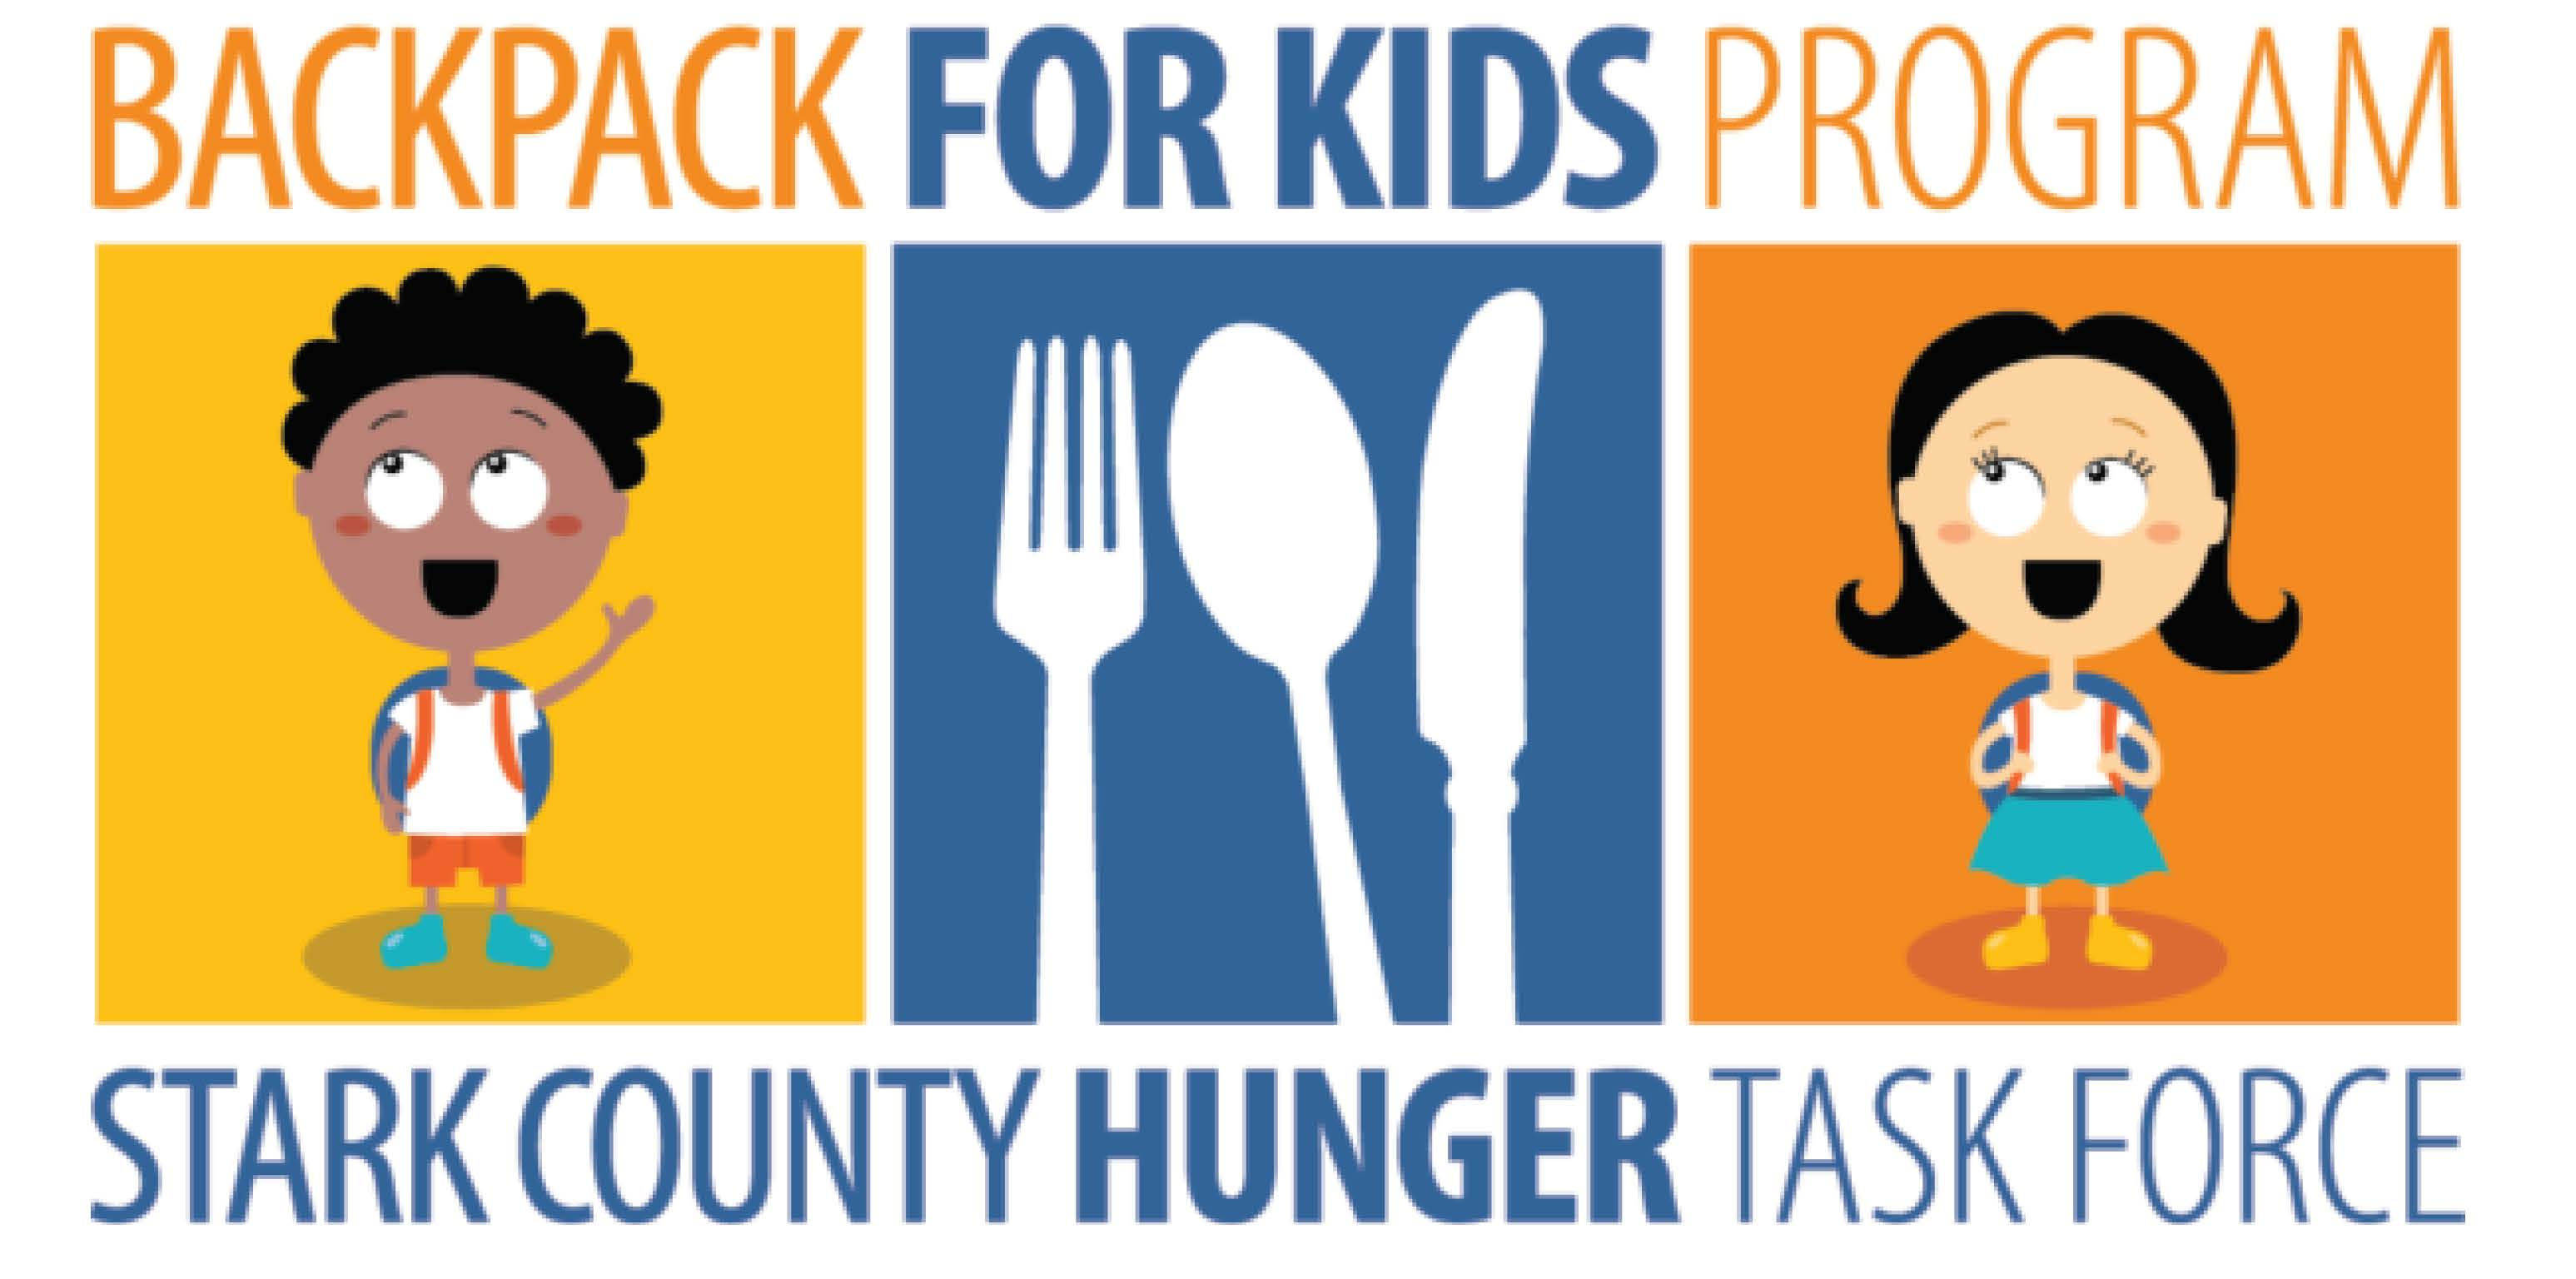 backpack for kids program stark county hunger task force